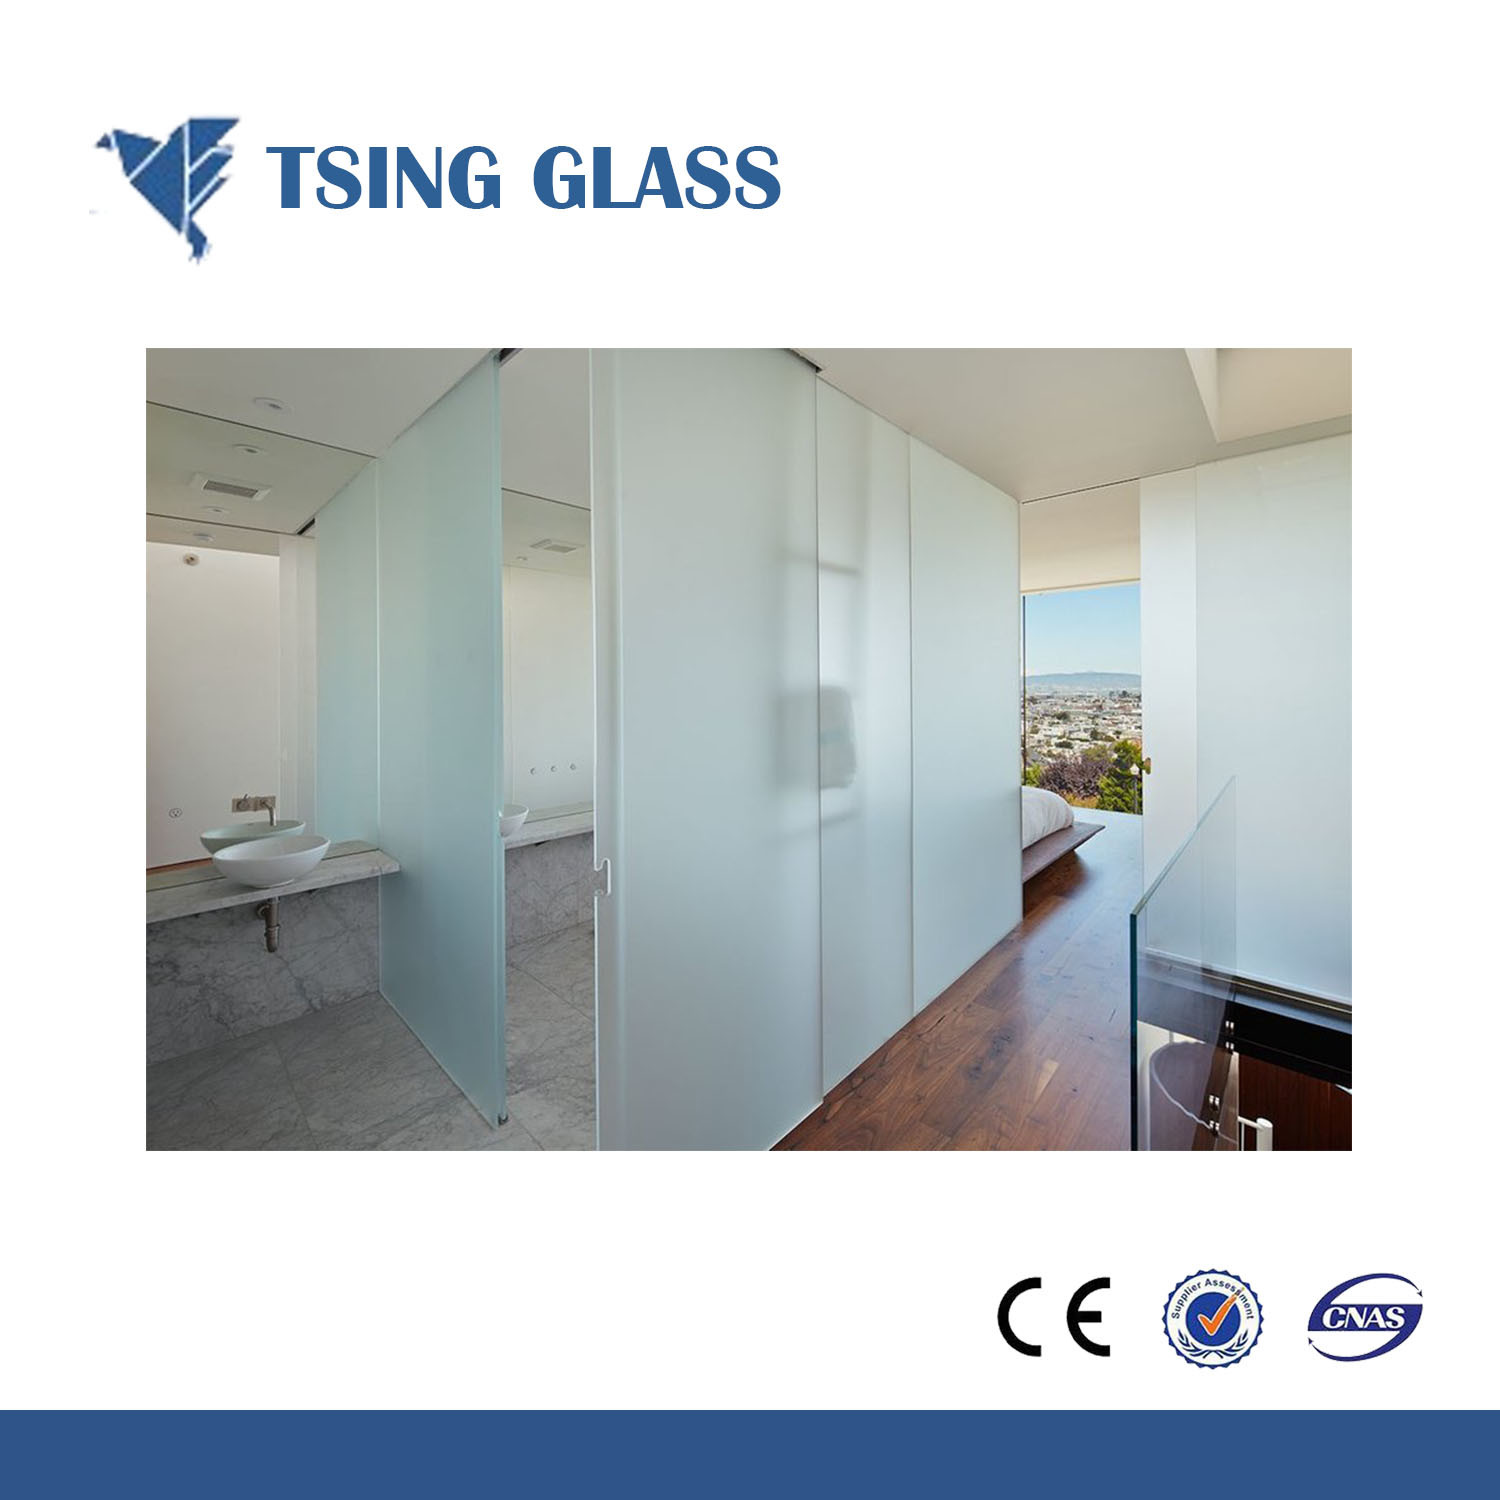 China Clear/Colored Frosted Glass, Acid Etched Glass for Louver ...